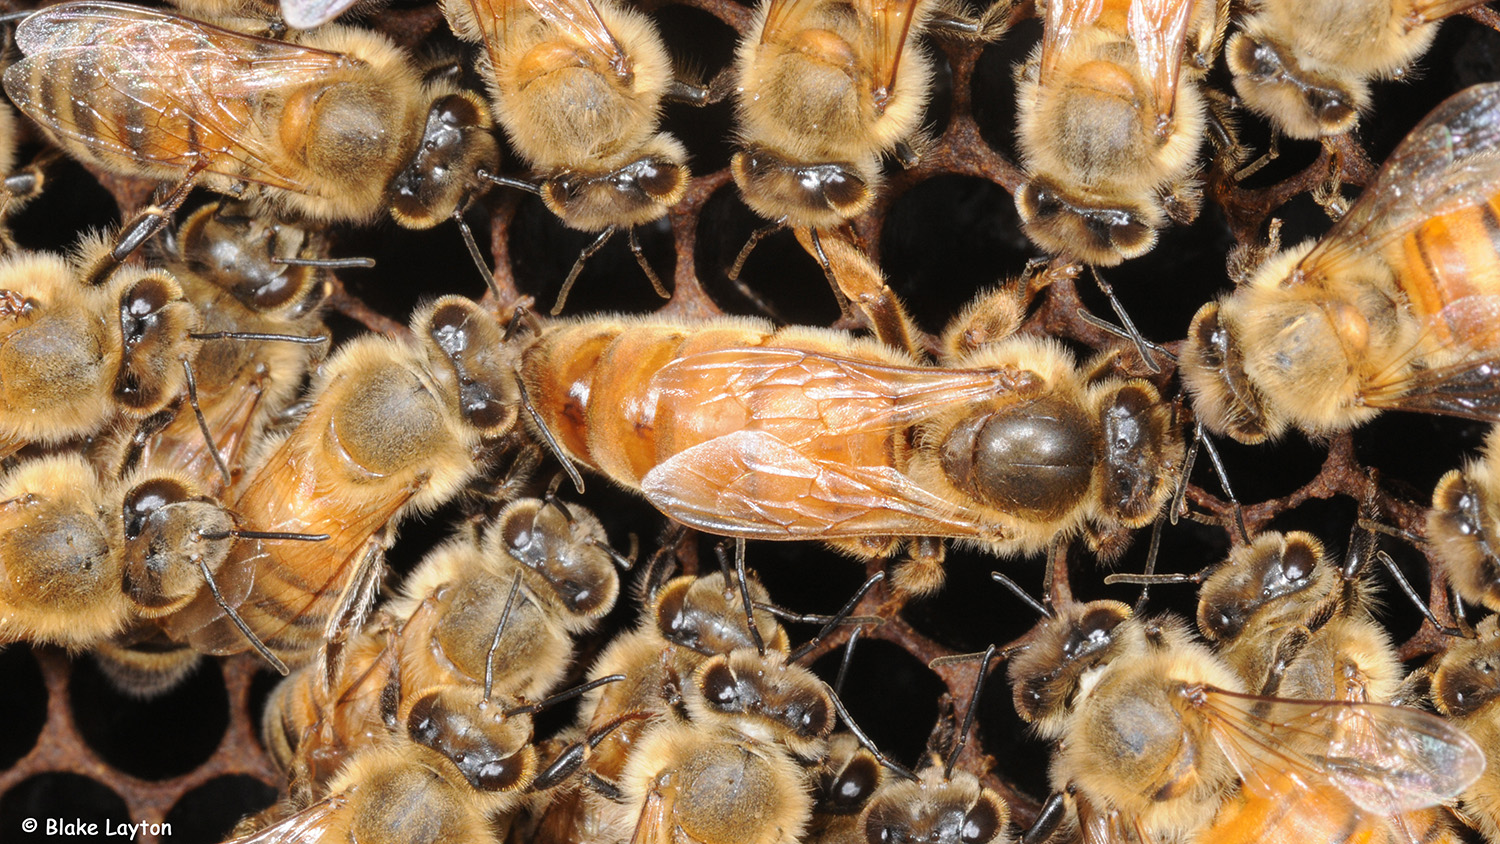 The Queen honey bee surrounded by worker bees.